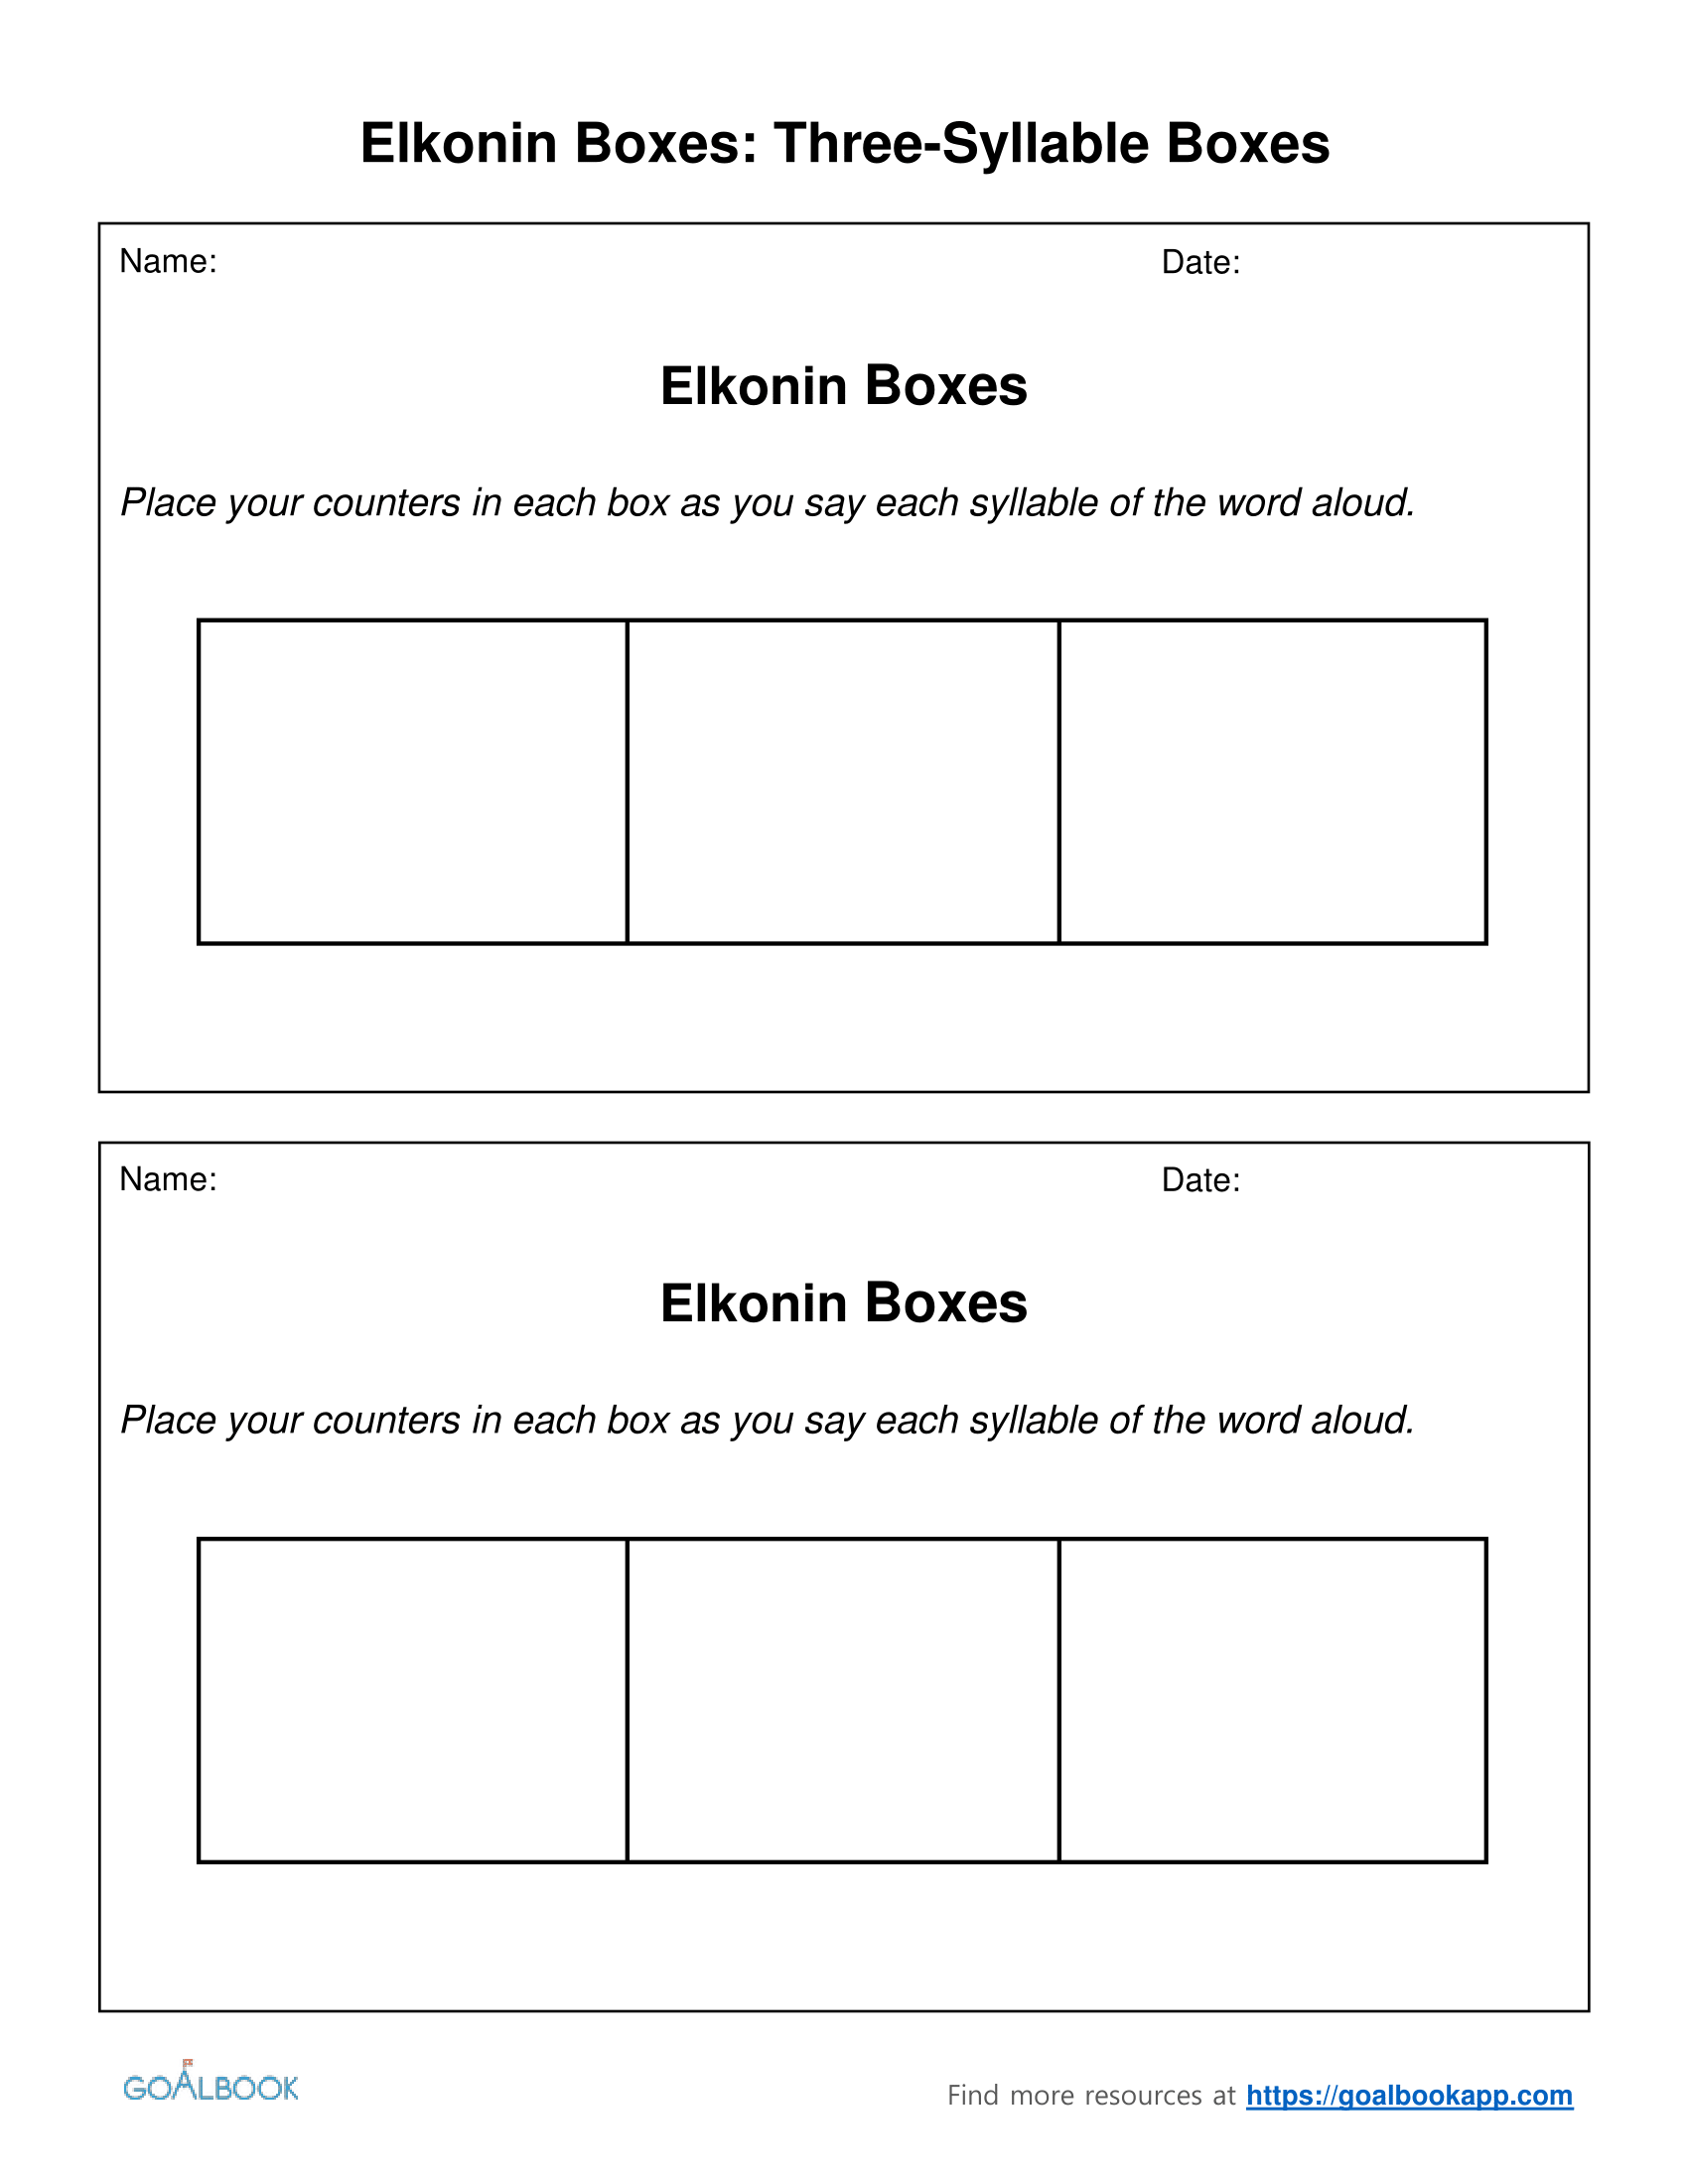 Elkonin boxes udl strategies three syllable elkonin boxes and worksheets pronofoot35fo Gallery